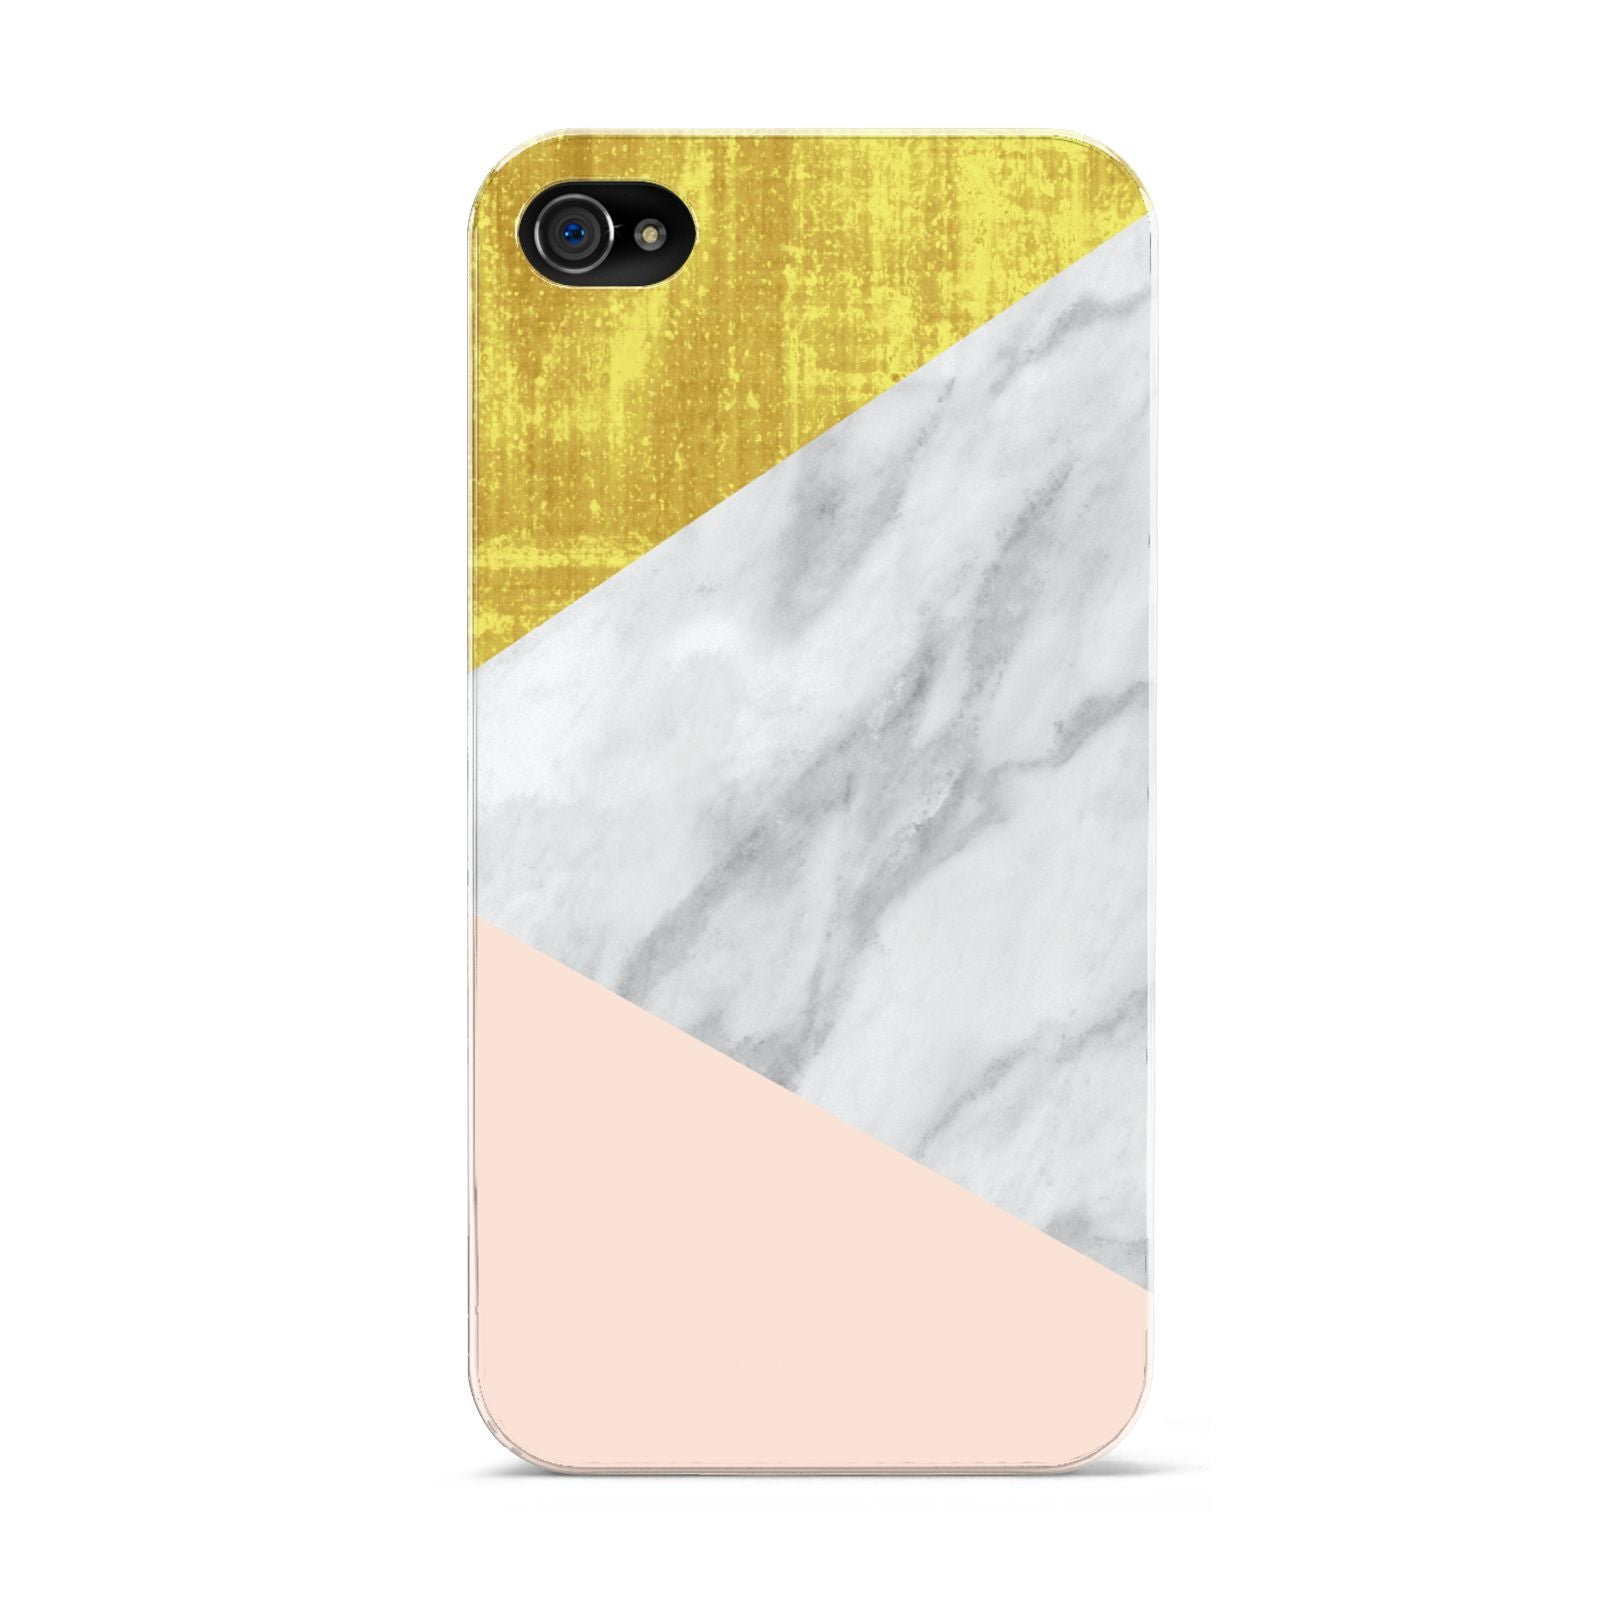 Marble White Gold Foil Peach Apple iPhone 4s Case